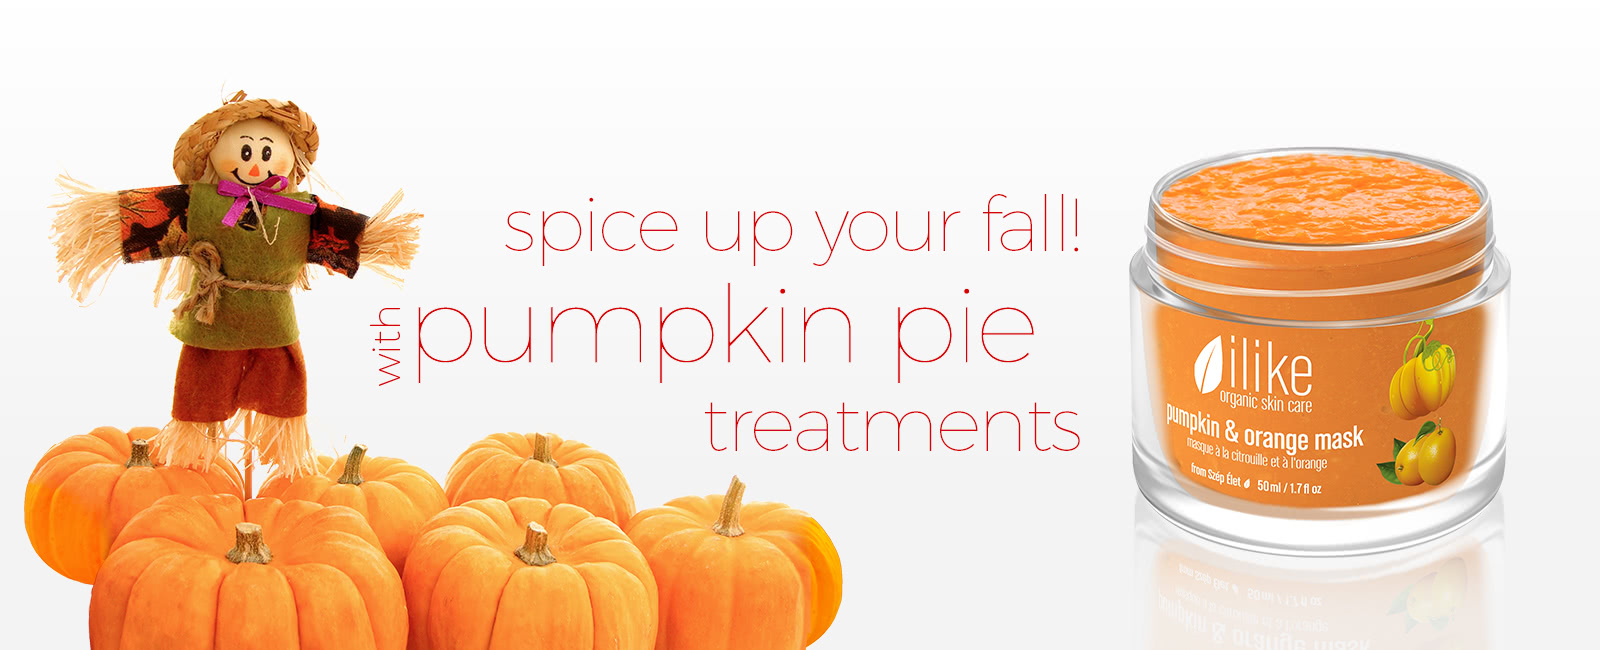 Spice Up Your Fall! With Pumpkin Pie Treatments